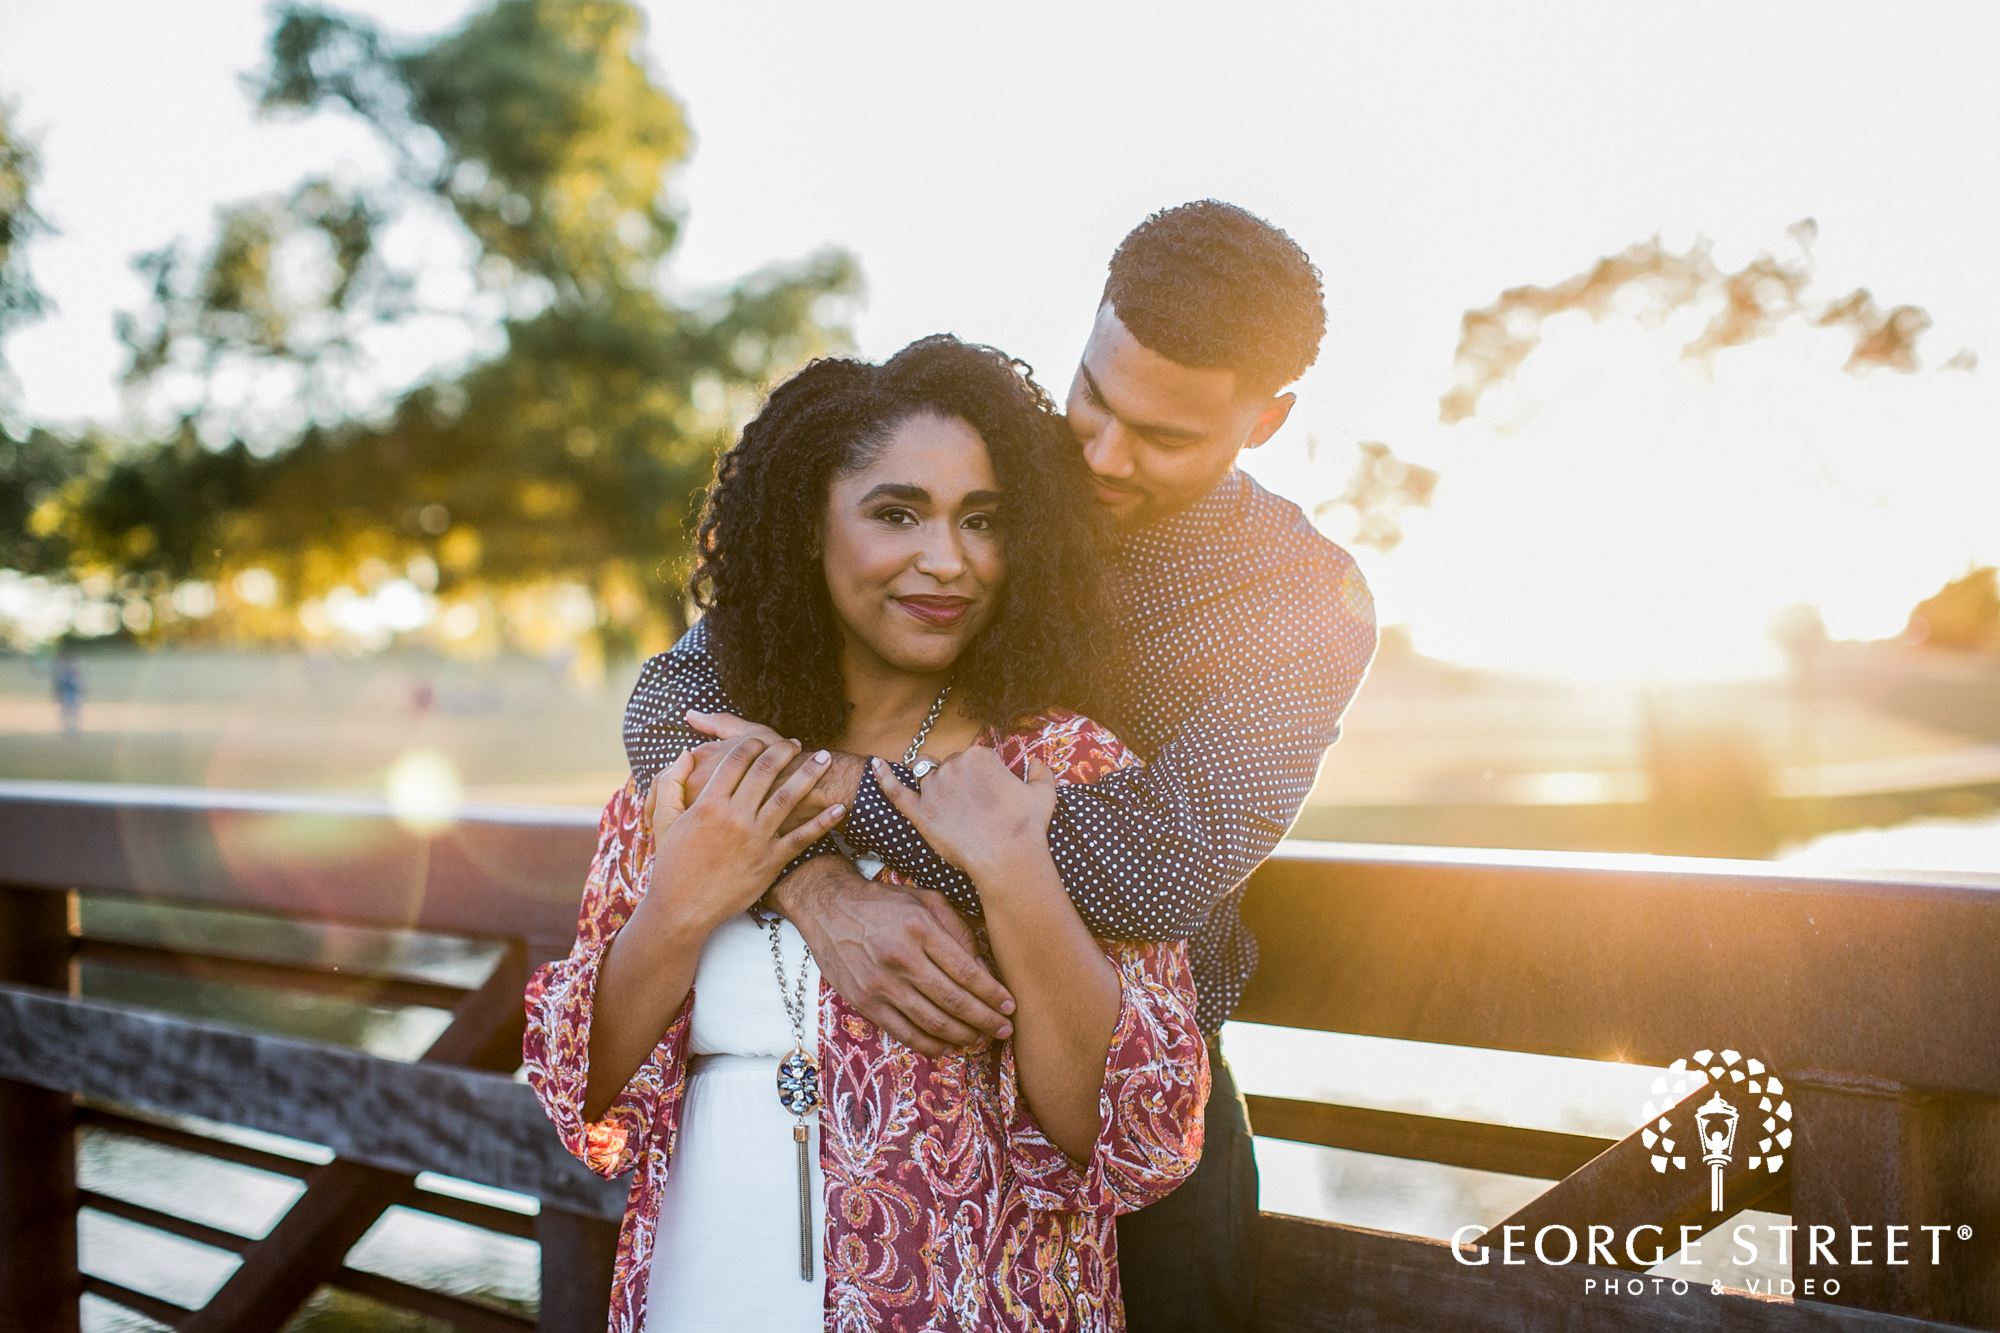 George Street's Top 7 Engagement Session Locations in Dallas